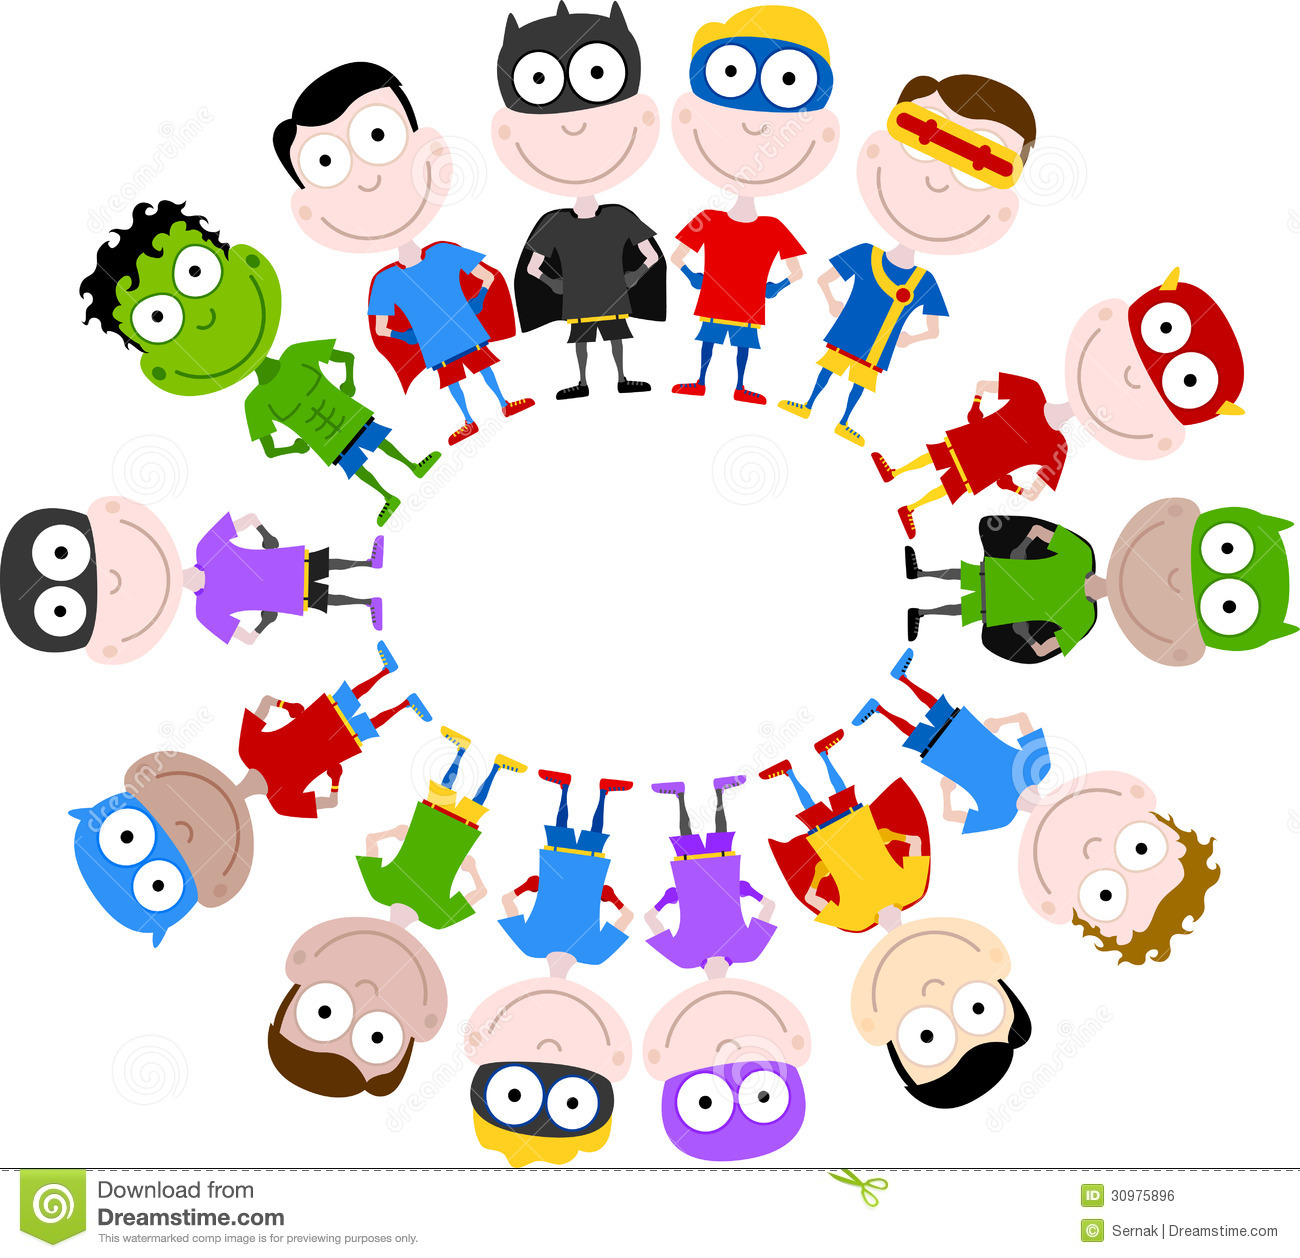 Cute superheroes circle stock vector  Illustration of